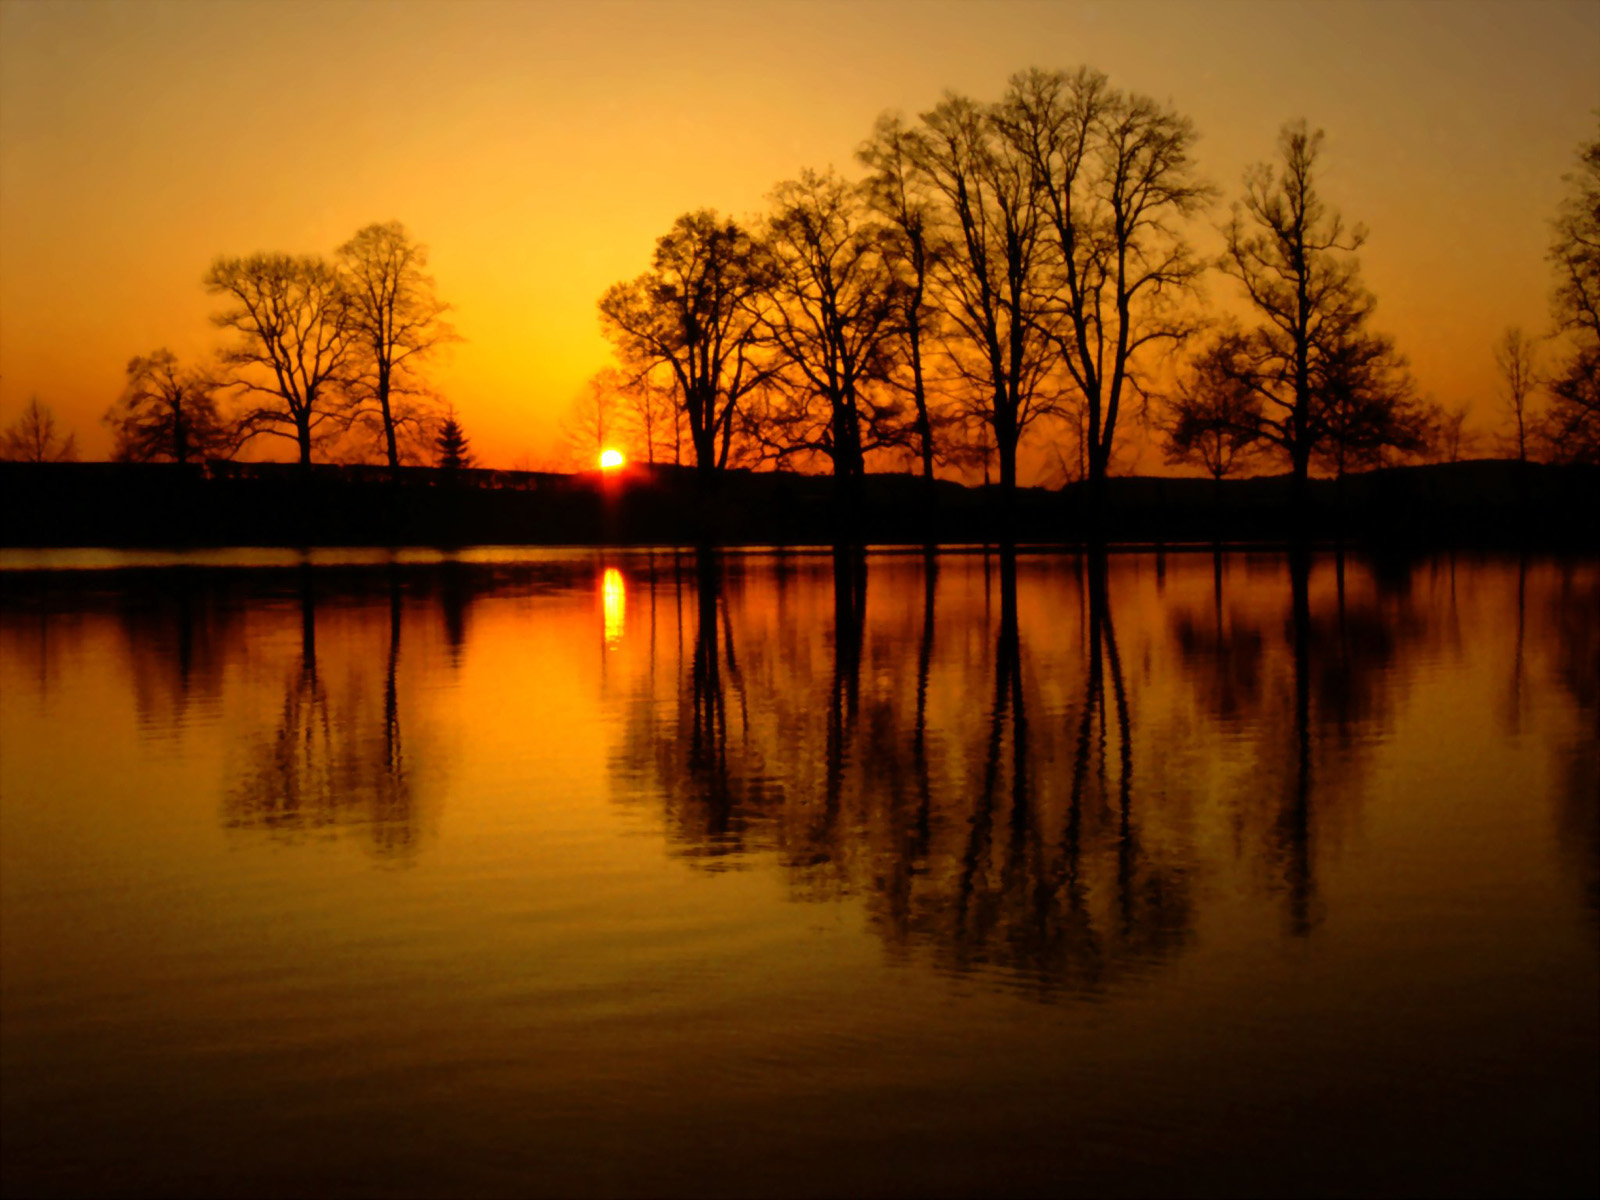 Sunset lake reflection of trees 51111